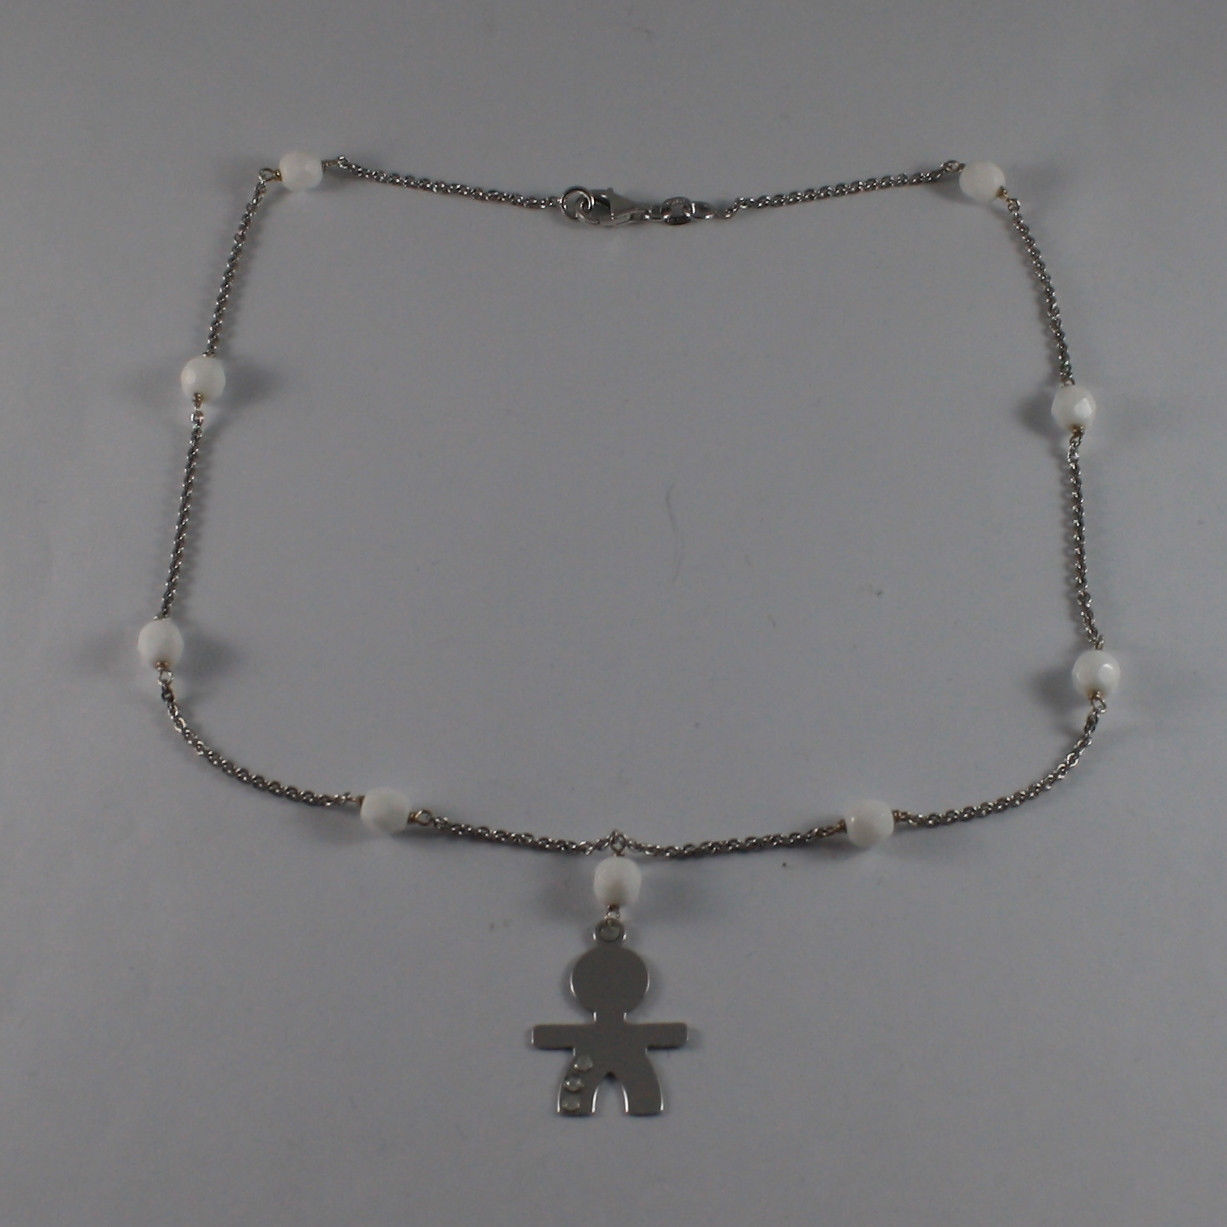 .925 SILVER RHODIUM NECKLACE WITH WHITE AGATE AND LITTLE BOY WITH 3 CRYSTALS